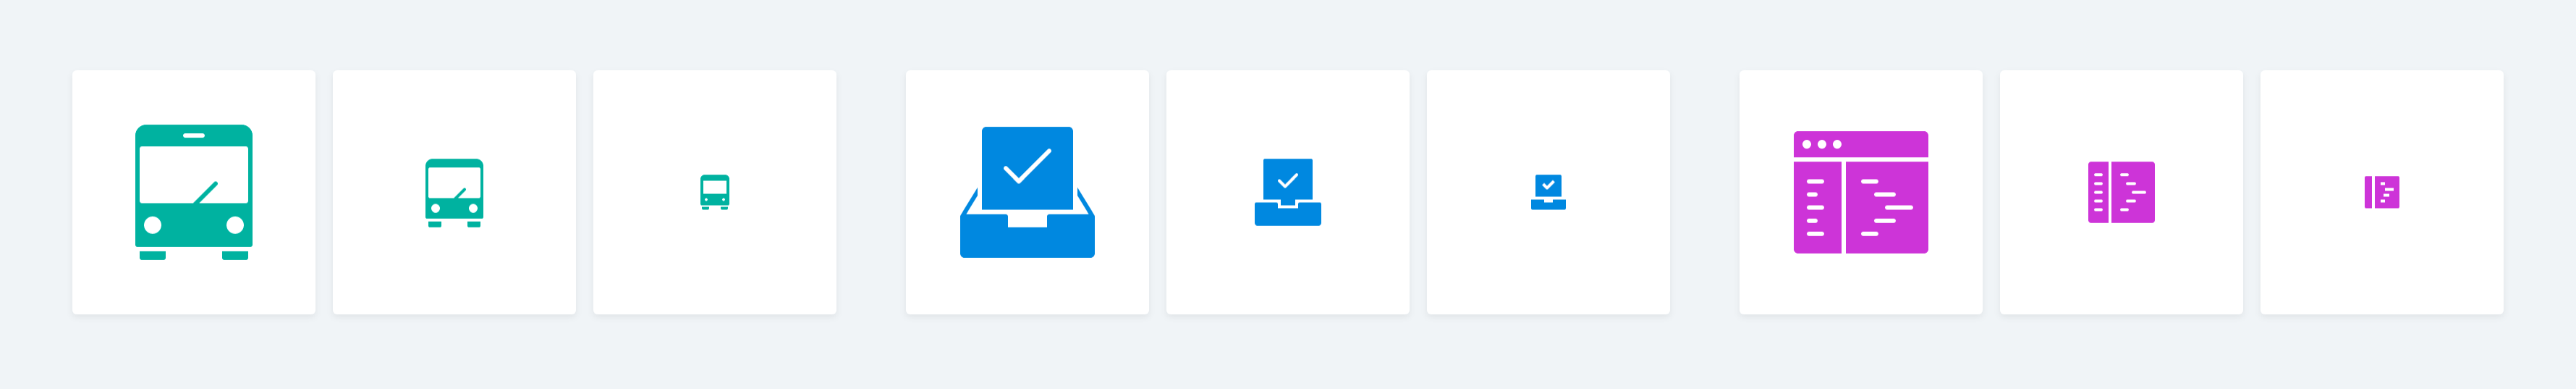 Responsive icons add detail at larger sizes.